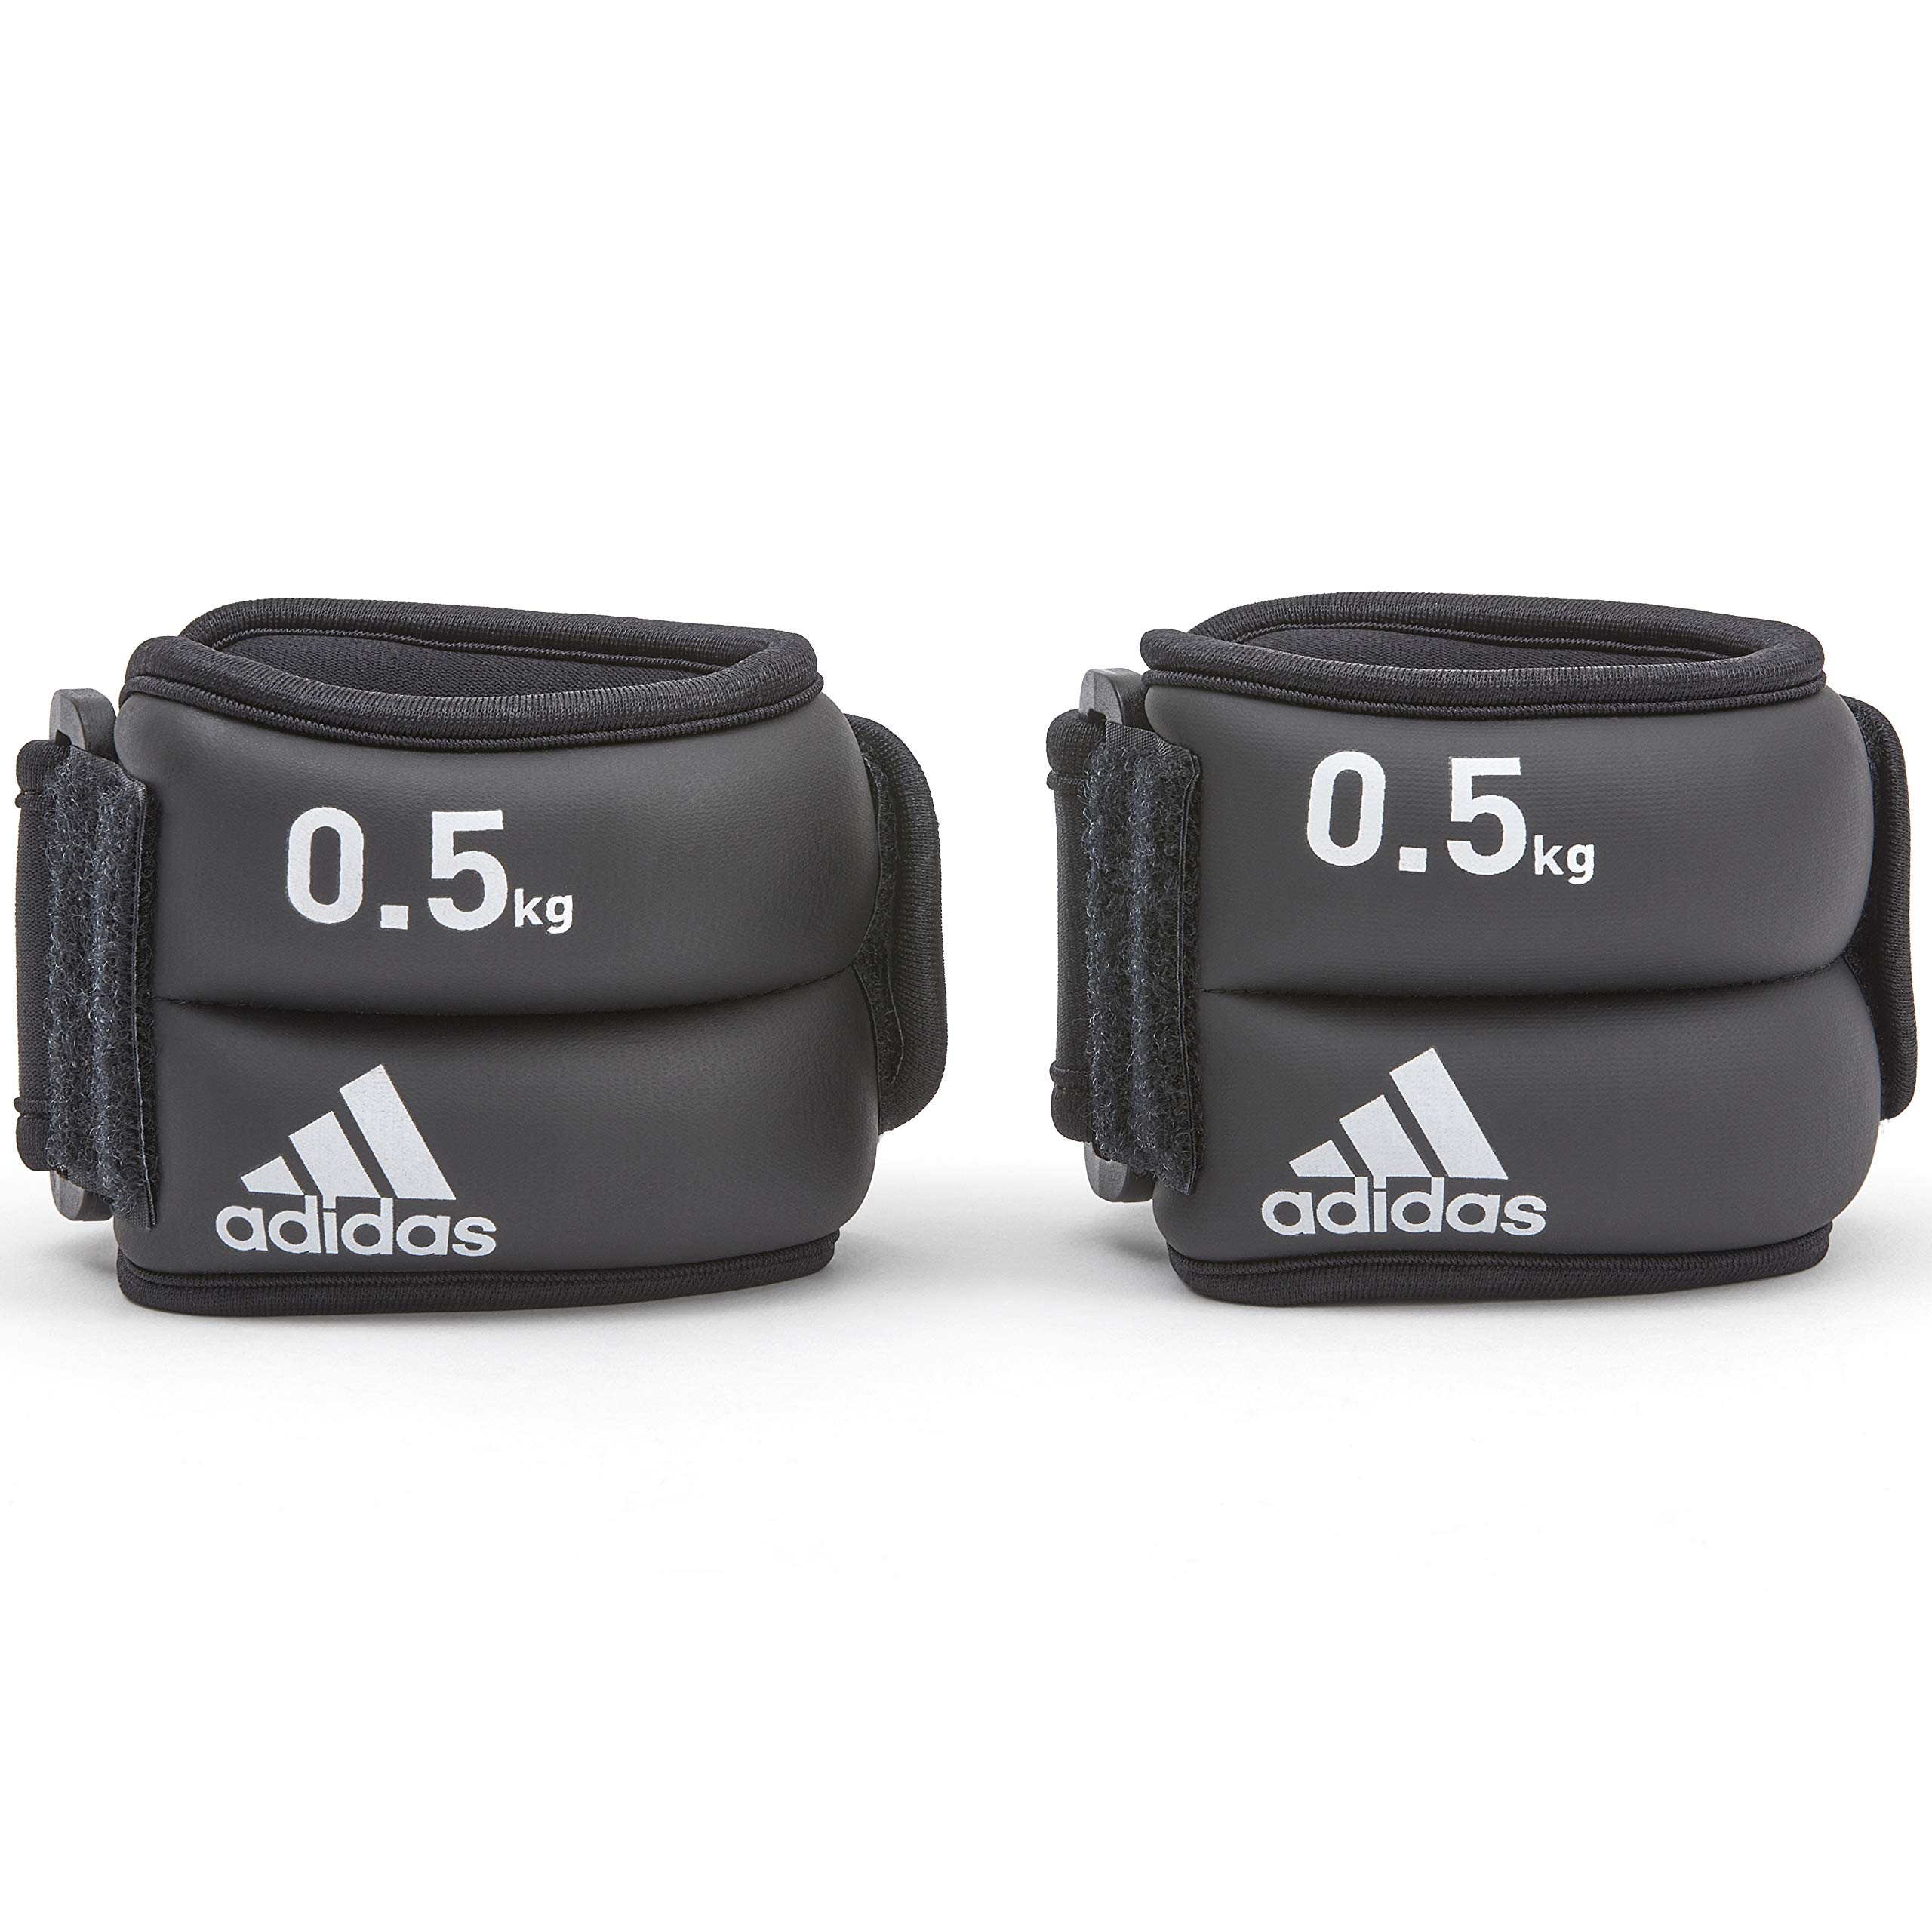 adidas Ankle and Wrist Weights 0.5 kg